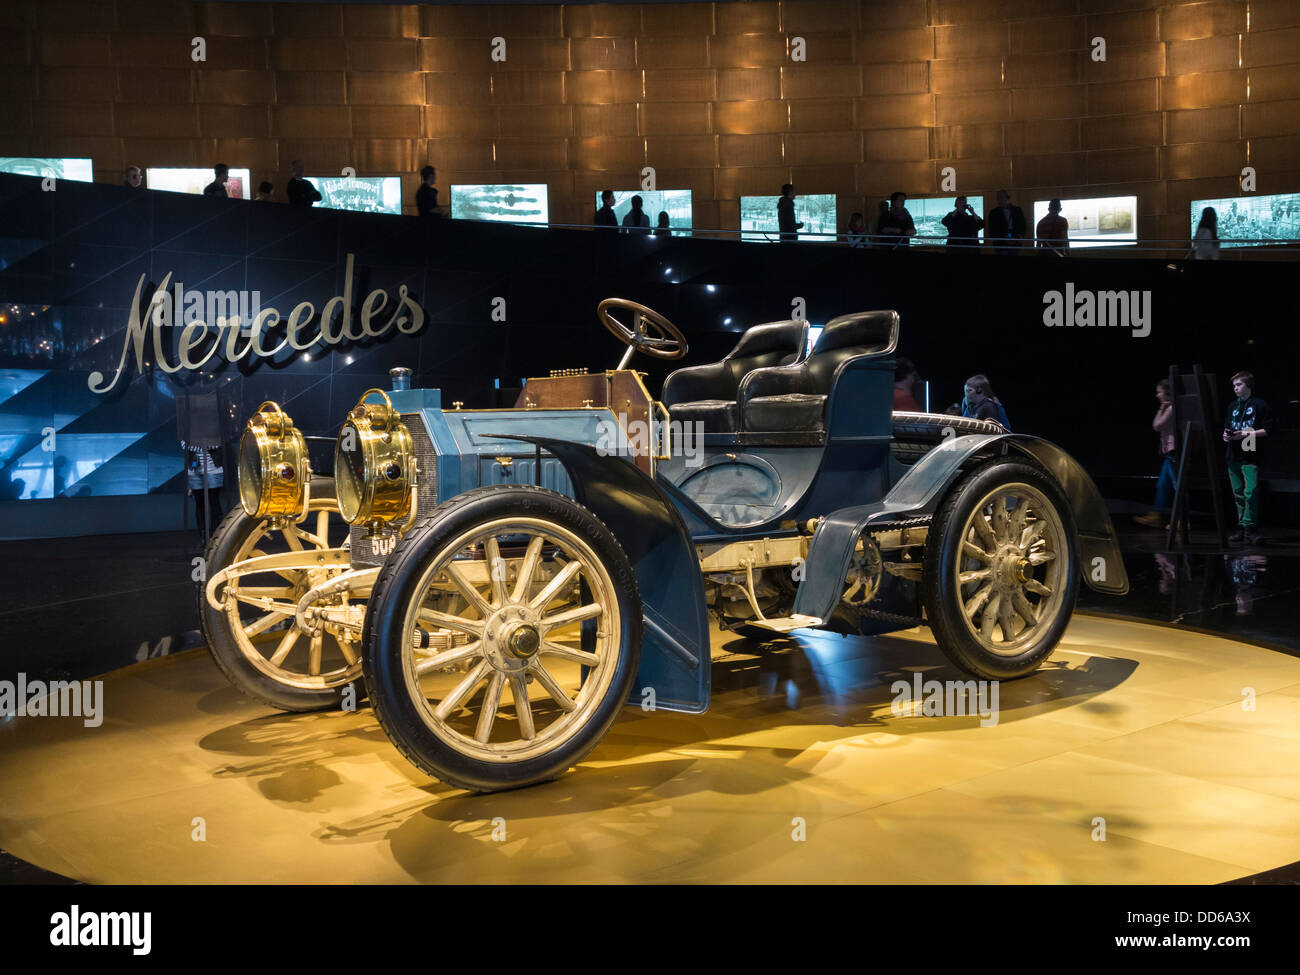 An early Mercedes car on display at the Mercedes-Benz Museum, Stuttgart, Germany - Stock Image